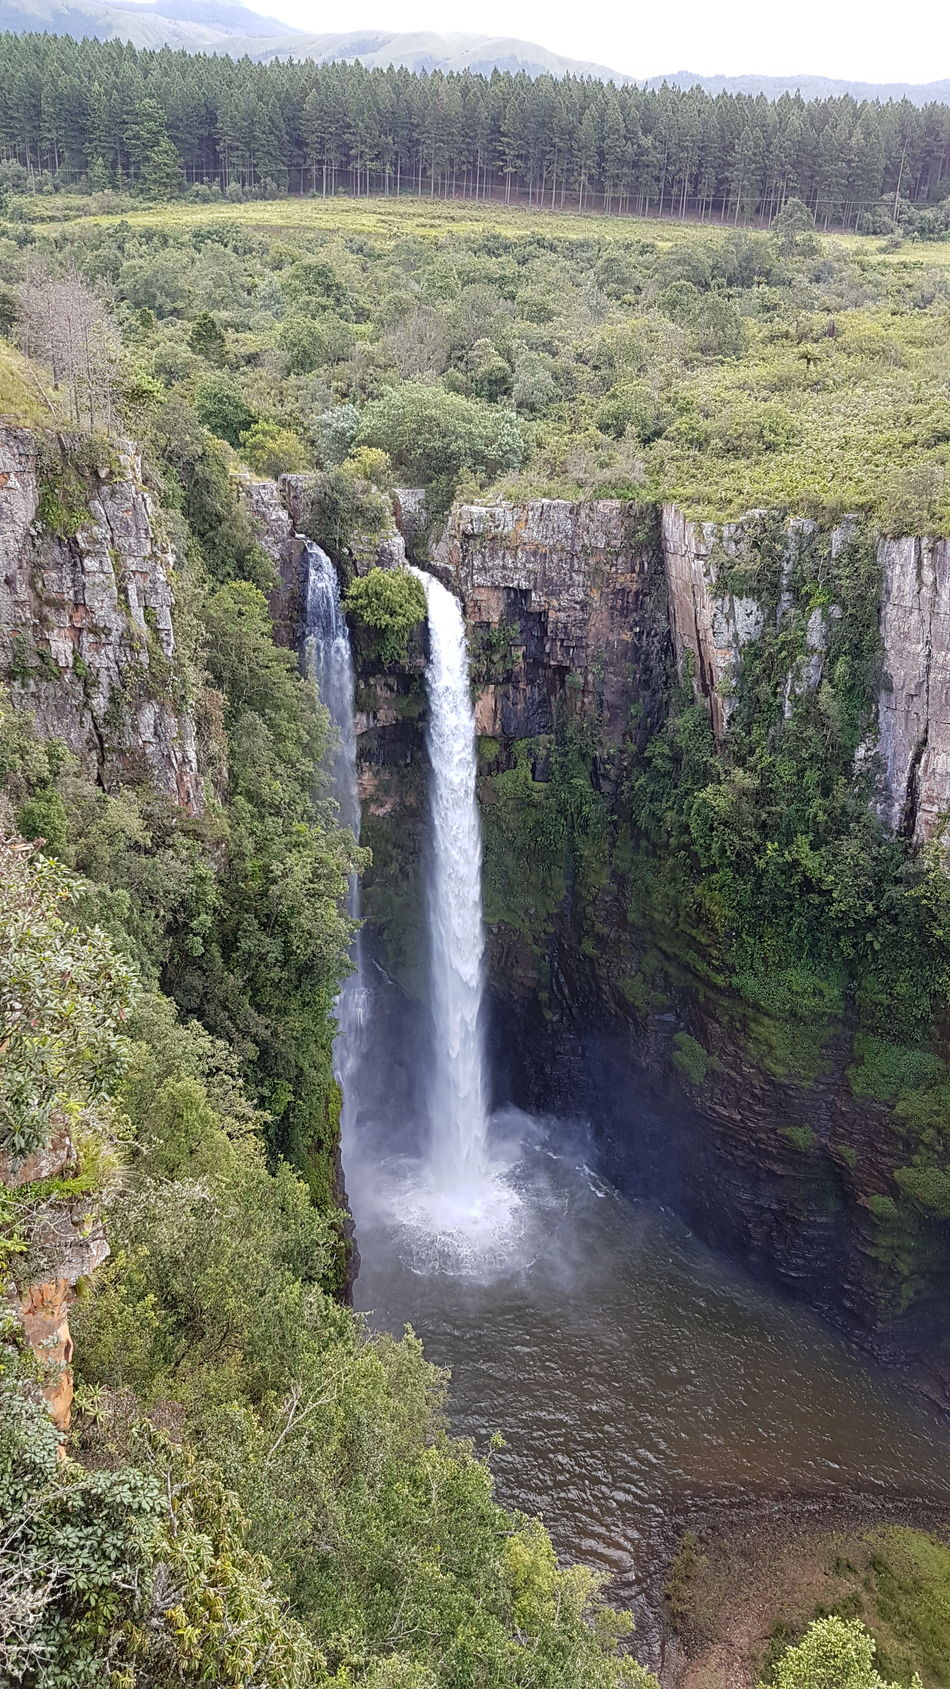 Waterfalls And Calming Views  Waterfall_collection South Africa 🇿🇦 Beauty In Nature God's Glory On Display  Waterfalls And Calming Views  Social Issues Water Outdoors Tranquility Beauty In Nature Scenics Landscape No People South Africa